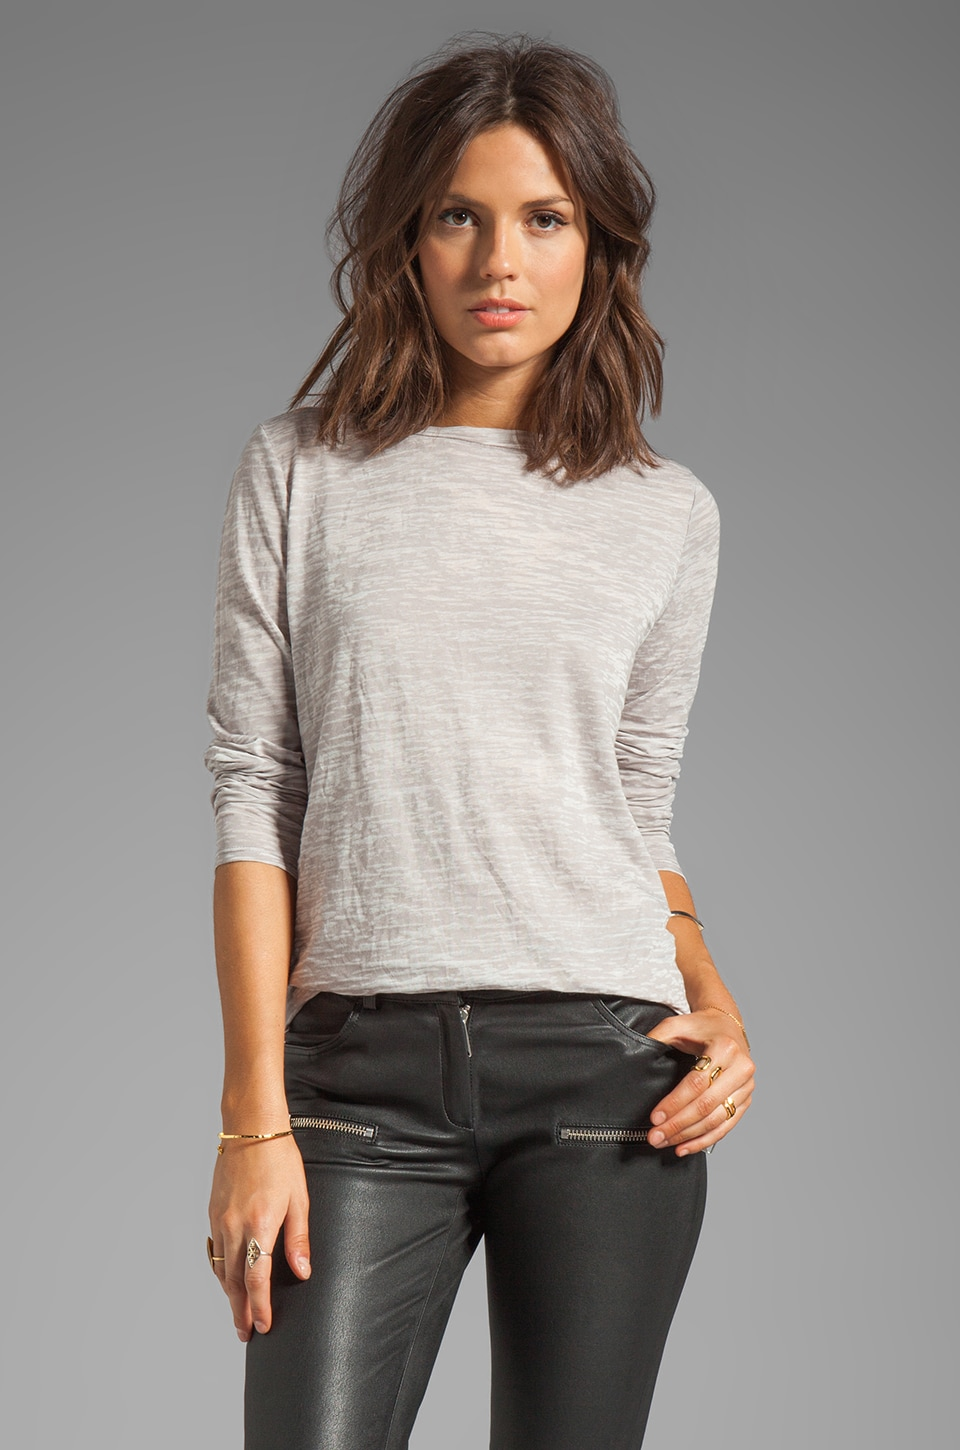 Enza Costa Loose Long Sleeve Crew in Ashen